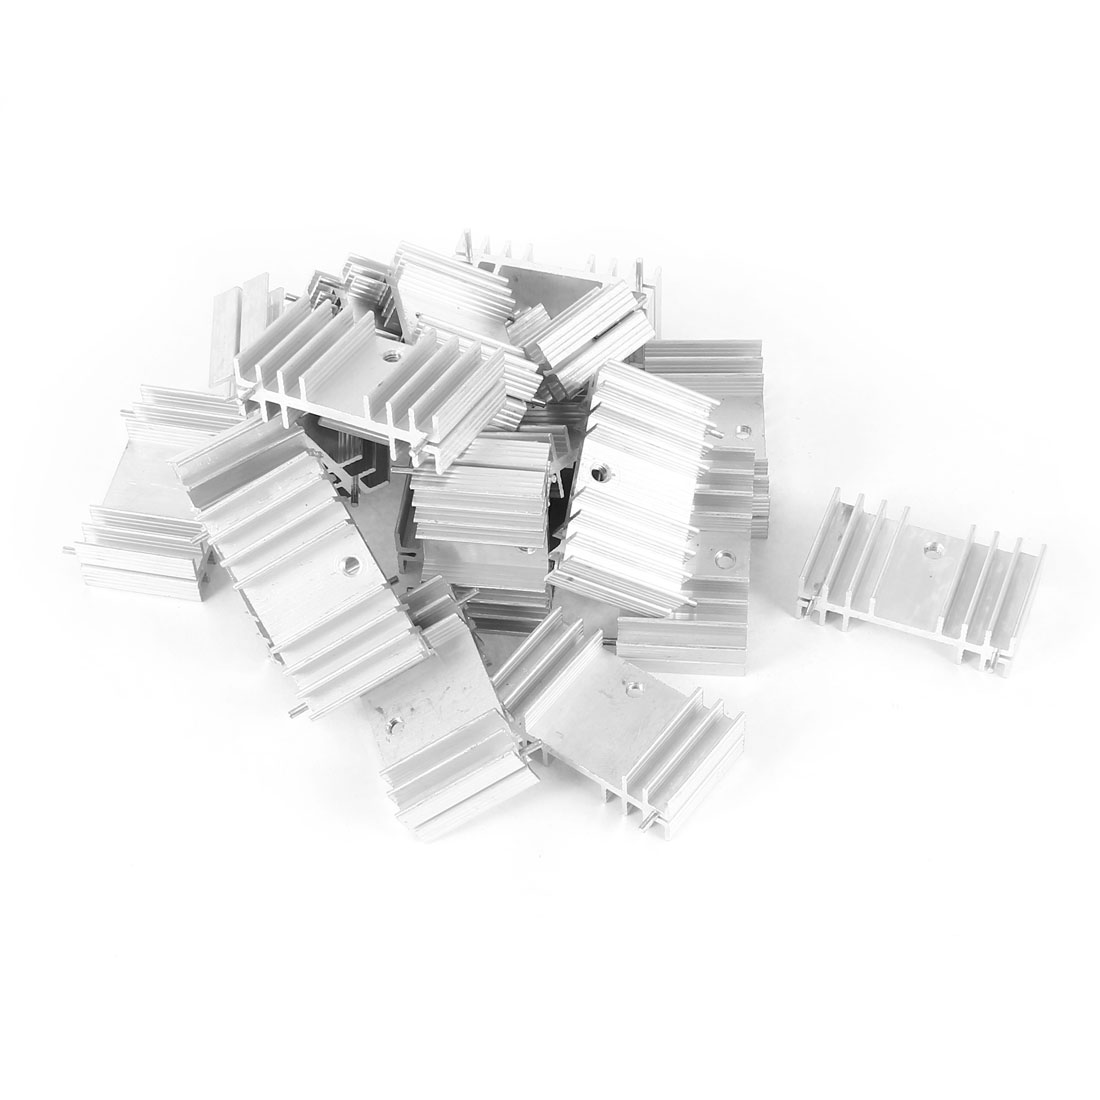 20 Pcs Screw Mount Aluminum Heatsink Heat Sink Radiator Cooling Cooler Fin w Needle 34mmx20mmx12mm Silver Tone for Mosfet IC